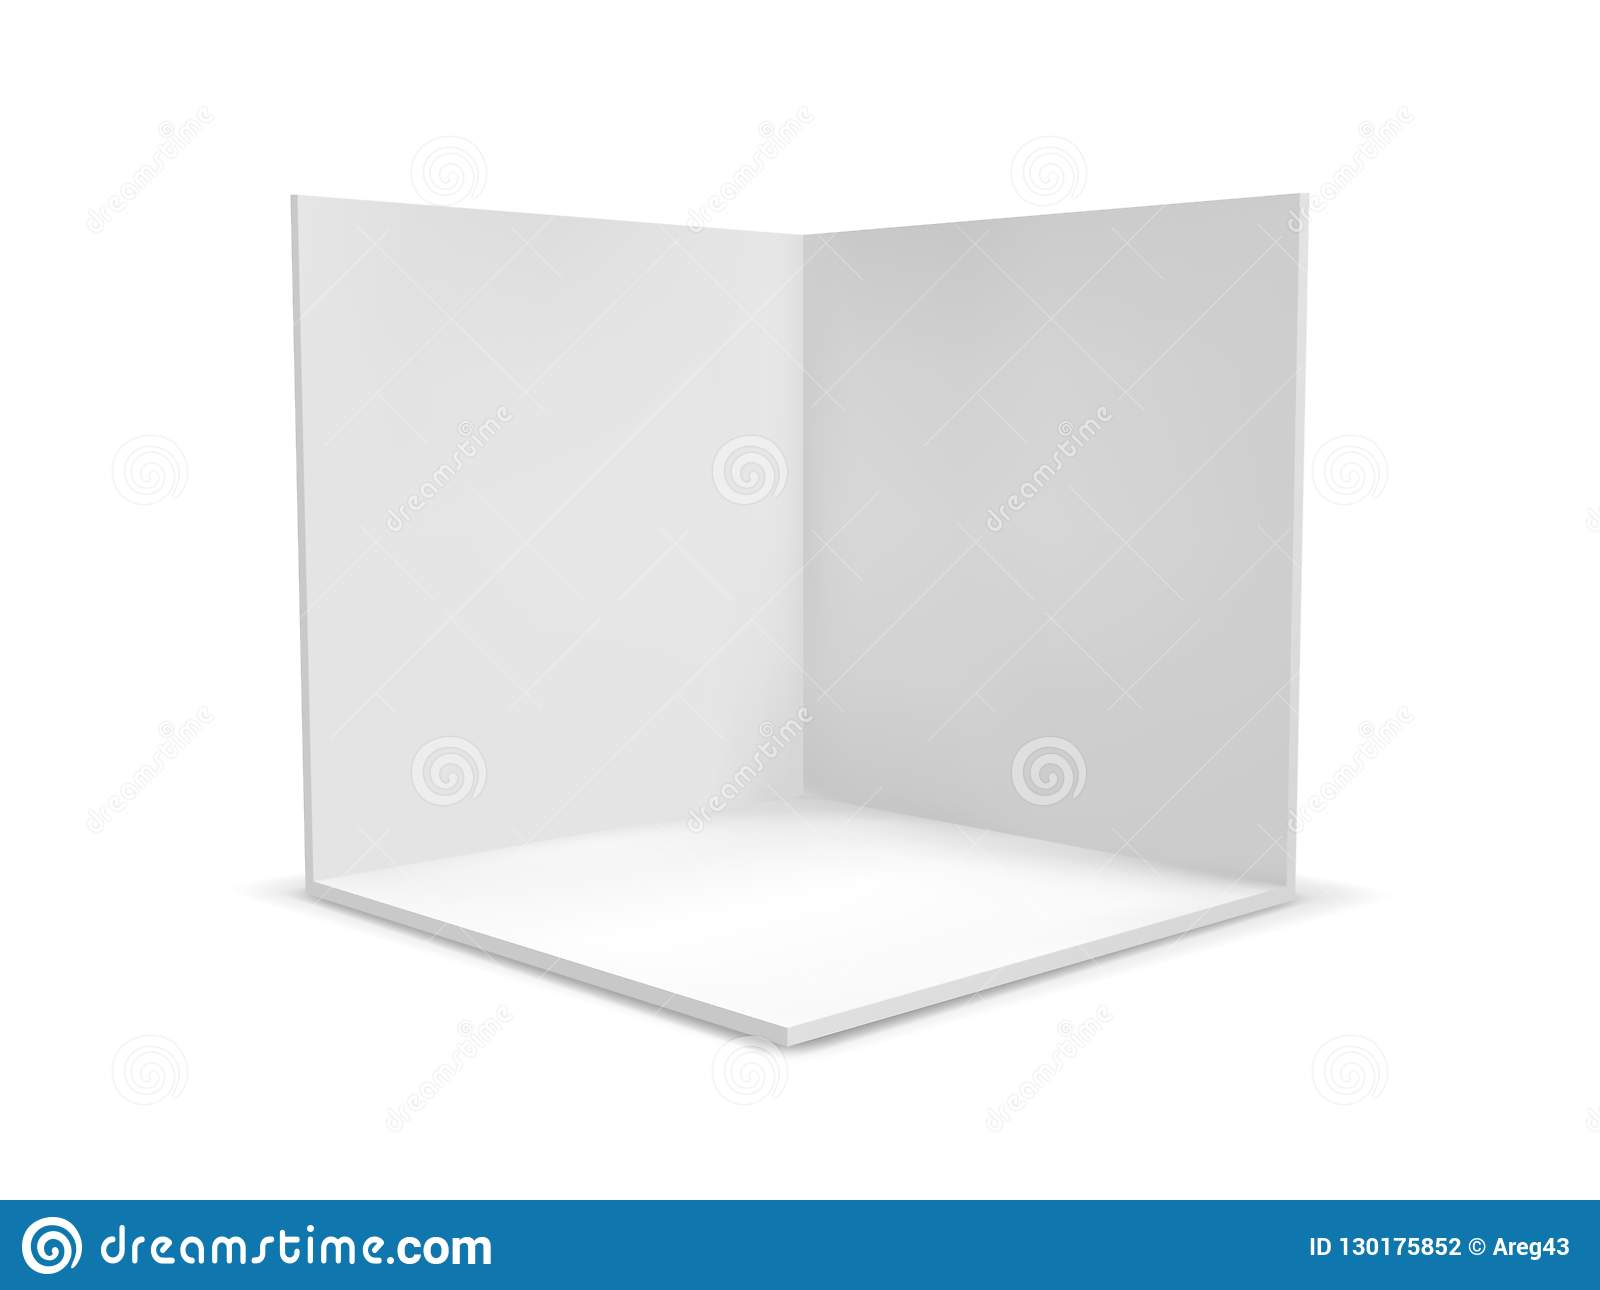 Cube box or corner room interior cross section. Vector white empty geometric square 3D blank box